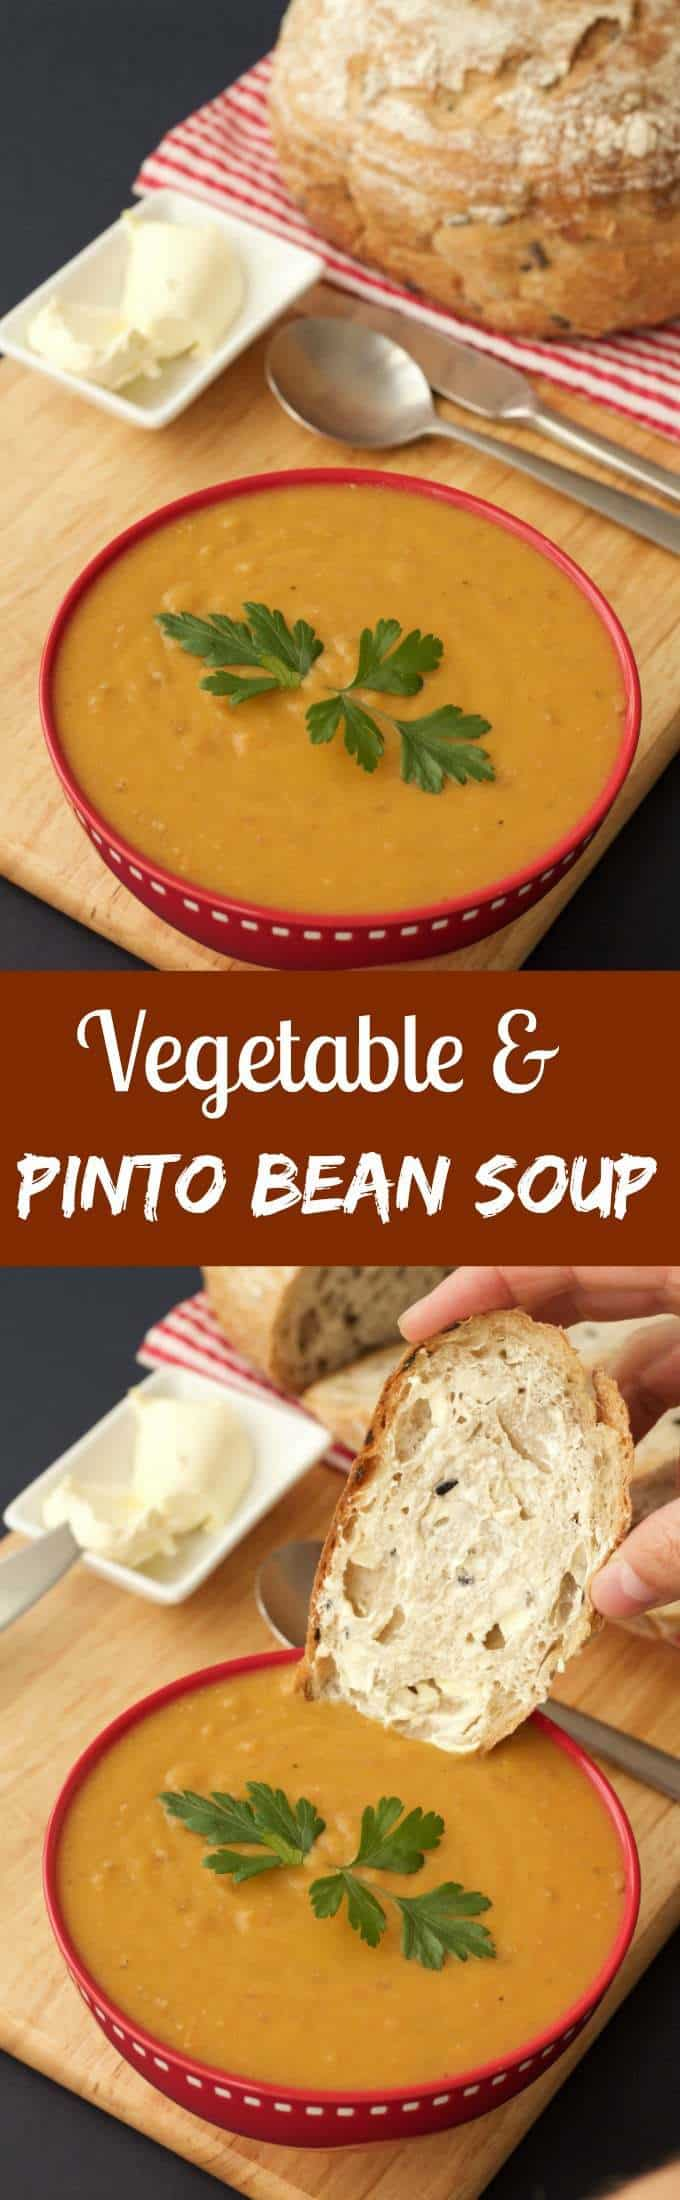 Hearty and nourishing bean soup with a rich and vibrant color. With just 10 simple ingredients this soup is totally satisfying comfort food! Vegan and GF. Vegan | Vegan Soup | Vegan Appetizer | lovingitvegan.com